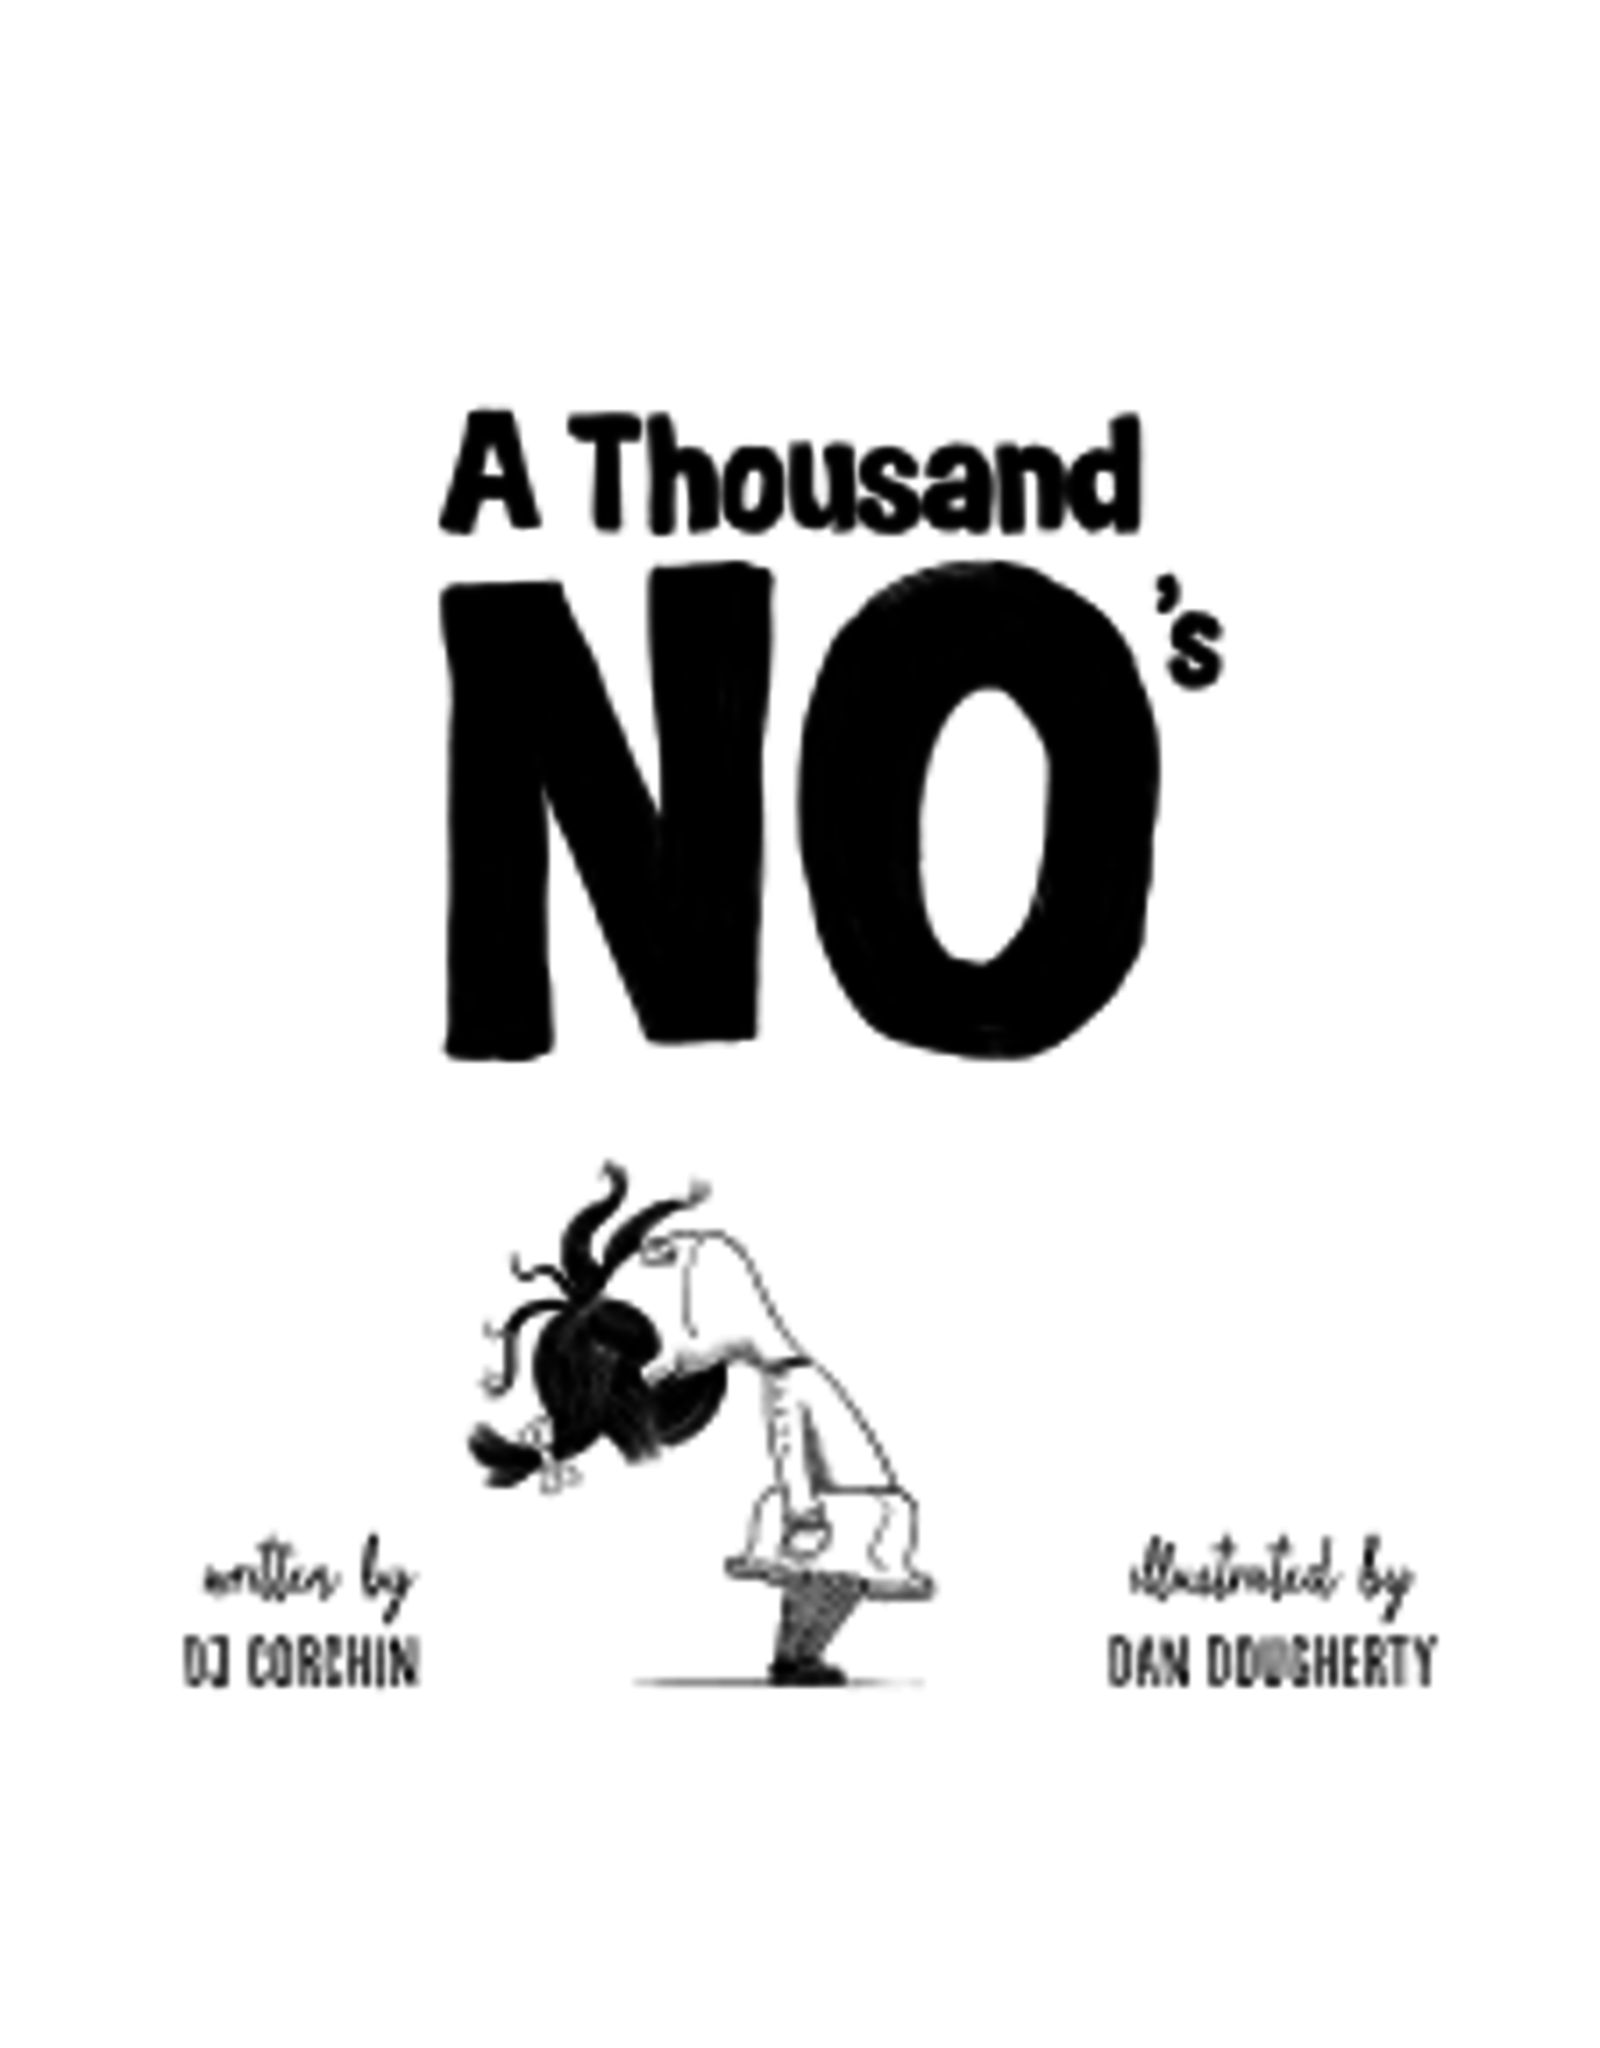 Books A Thousand No's written by DJ Corchin and Illustrated y Dan Doughtery (Holiday Catalog)